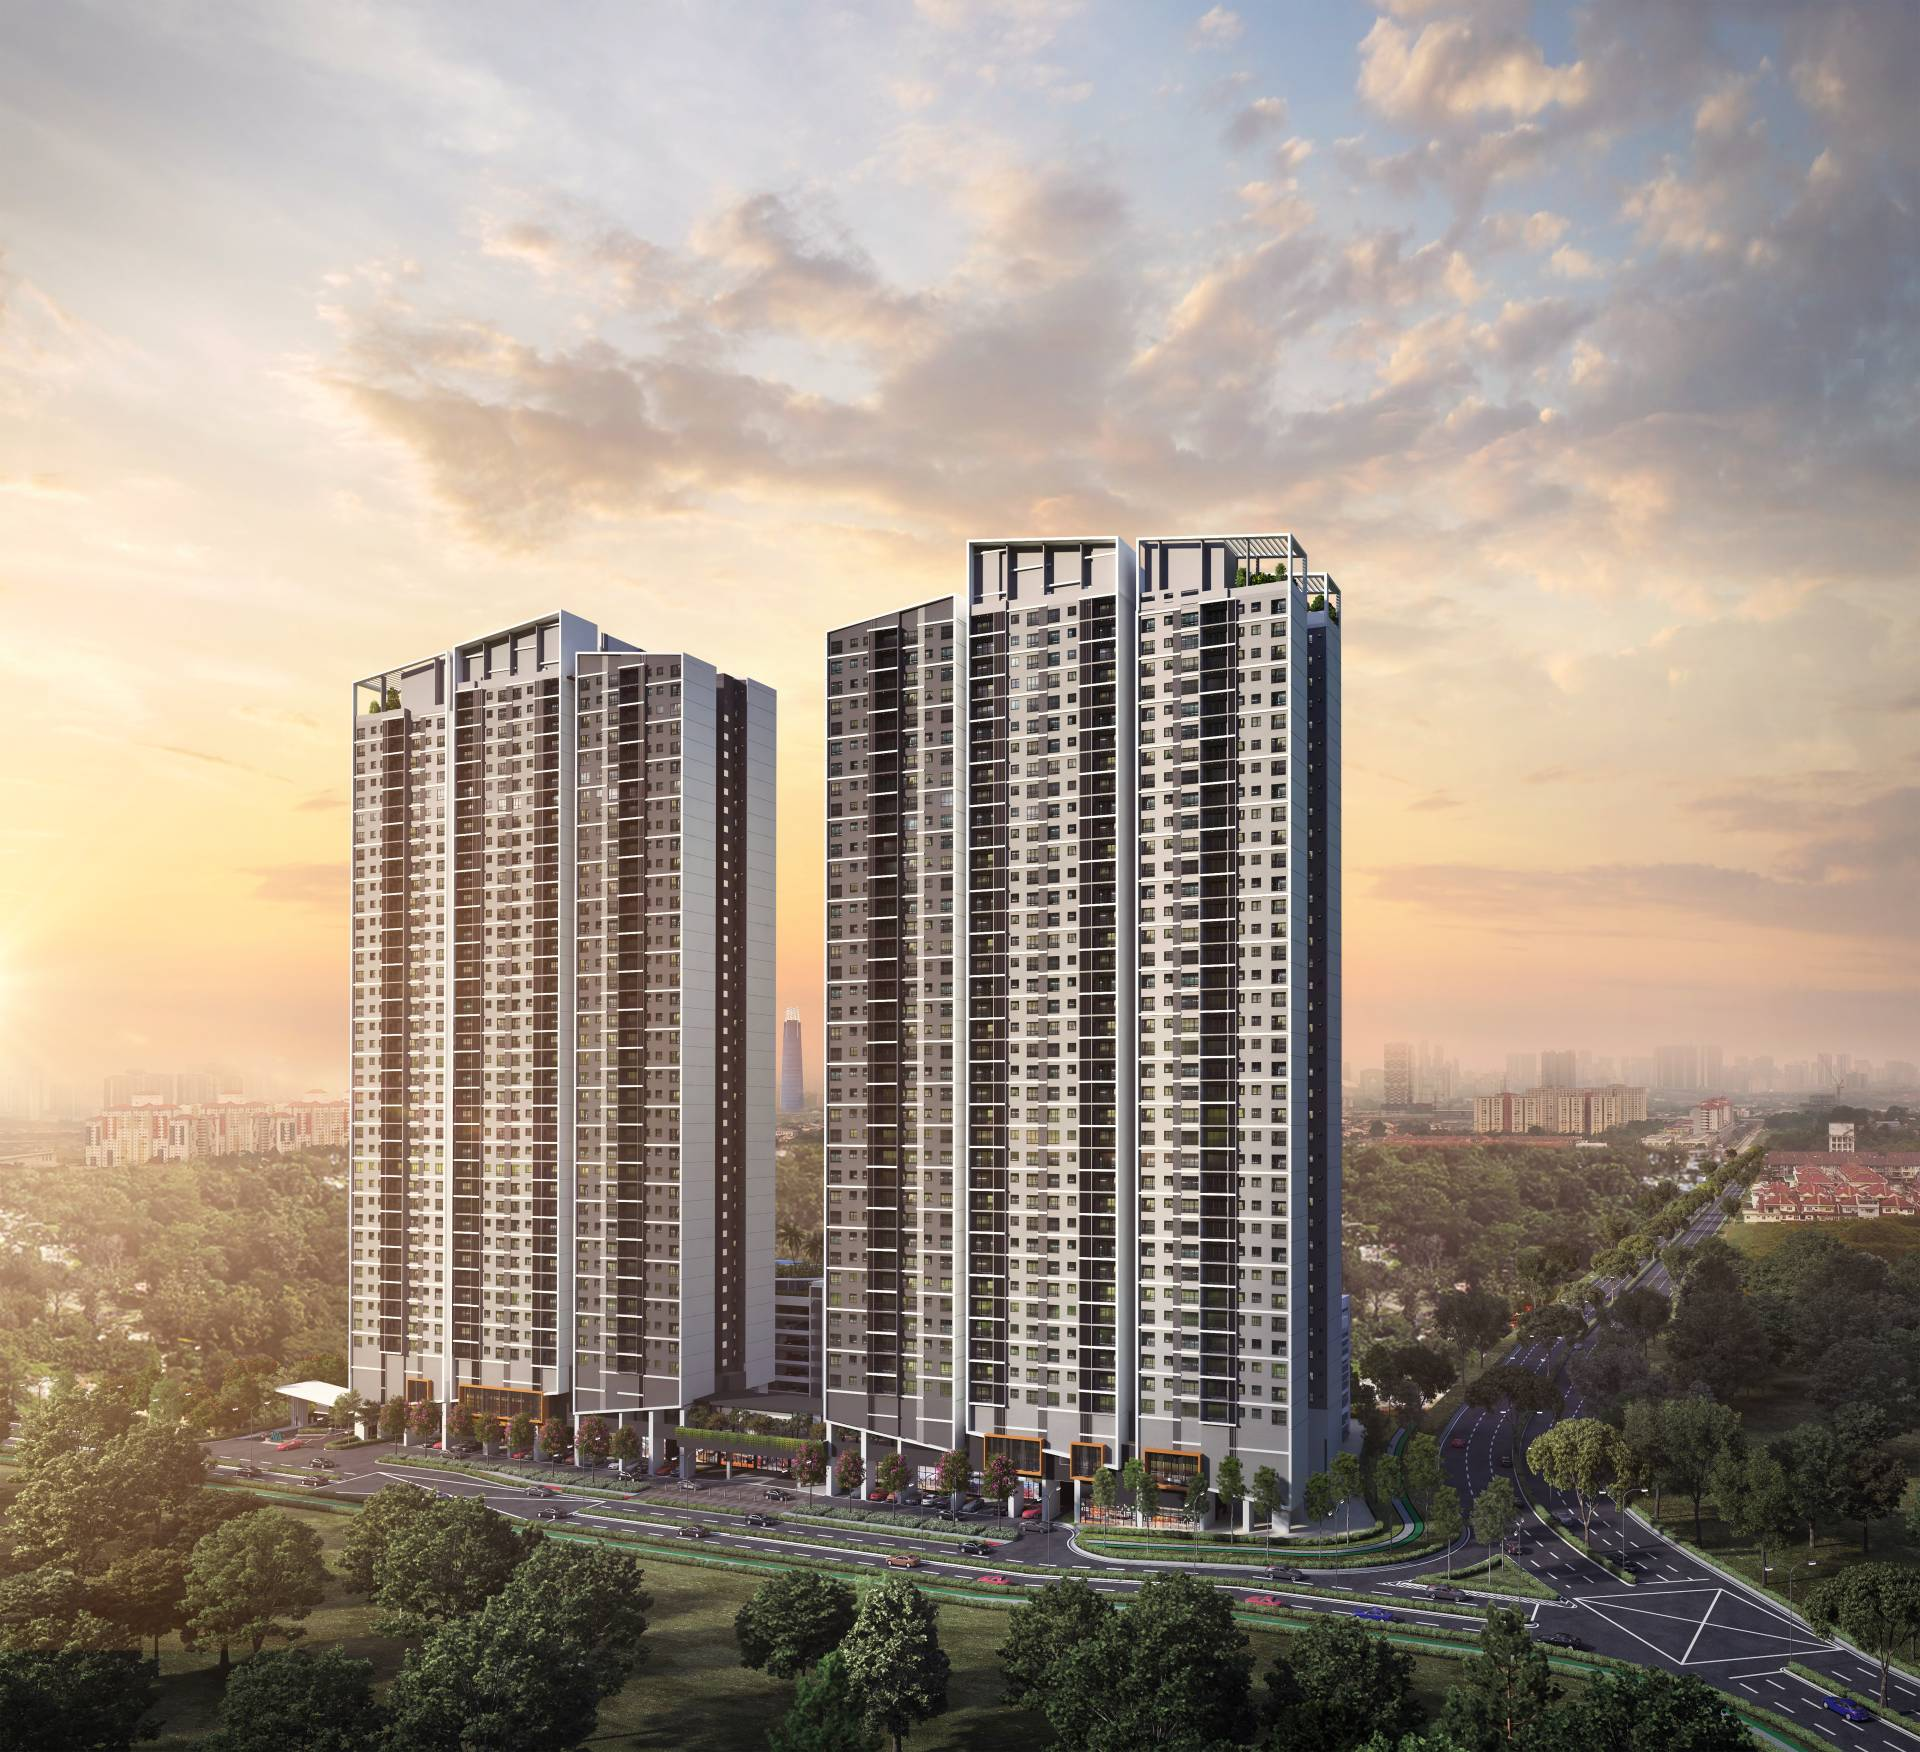 Residensi AVA will be located in the heart of Kepong at The Walk, Kiara Bay's Central Business District.